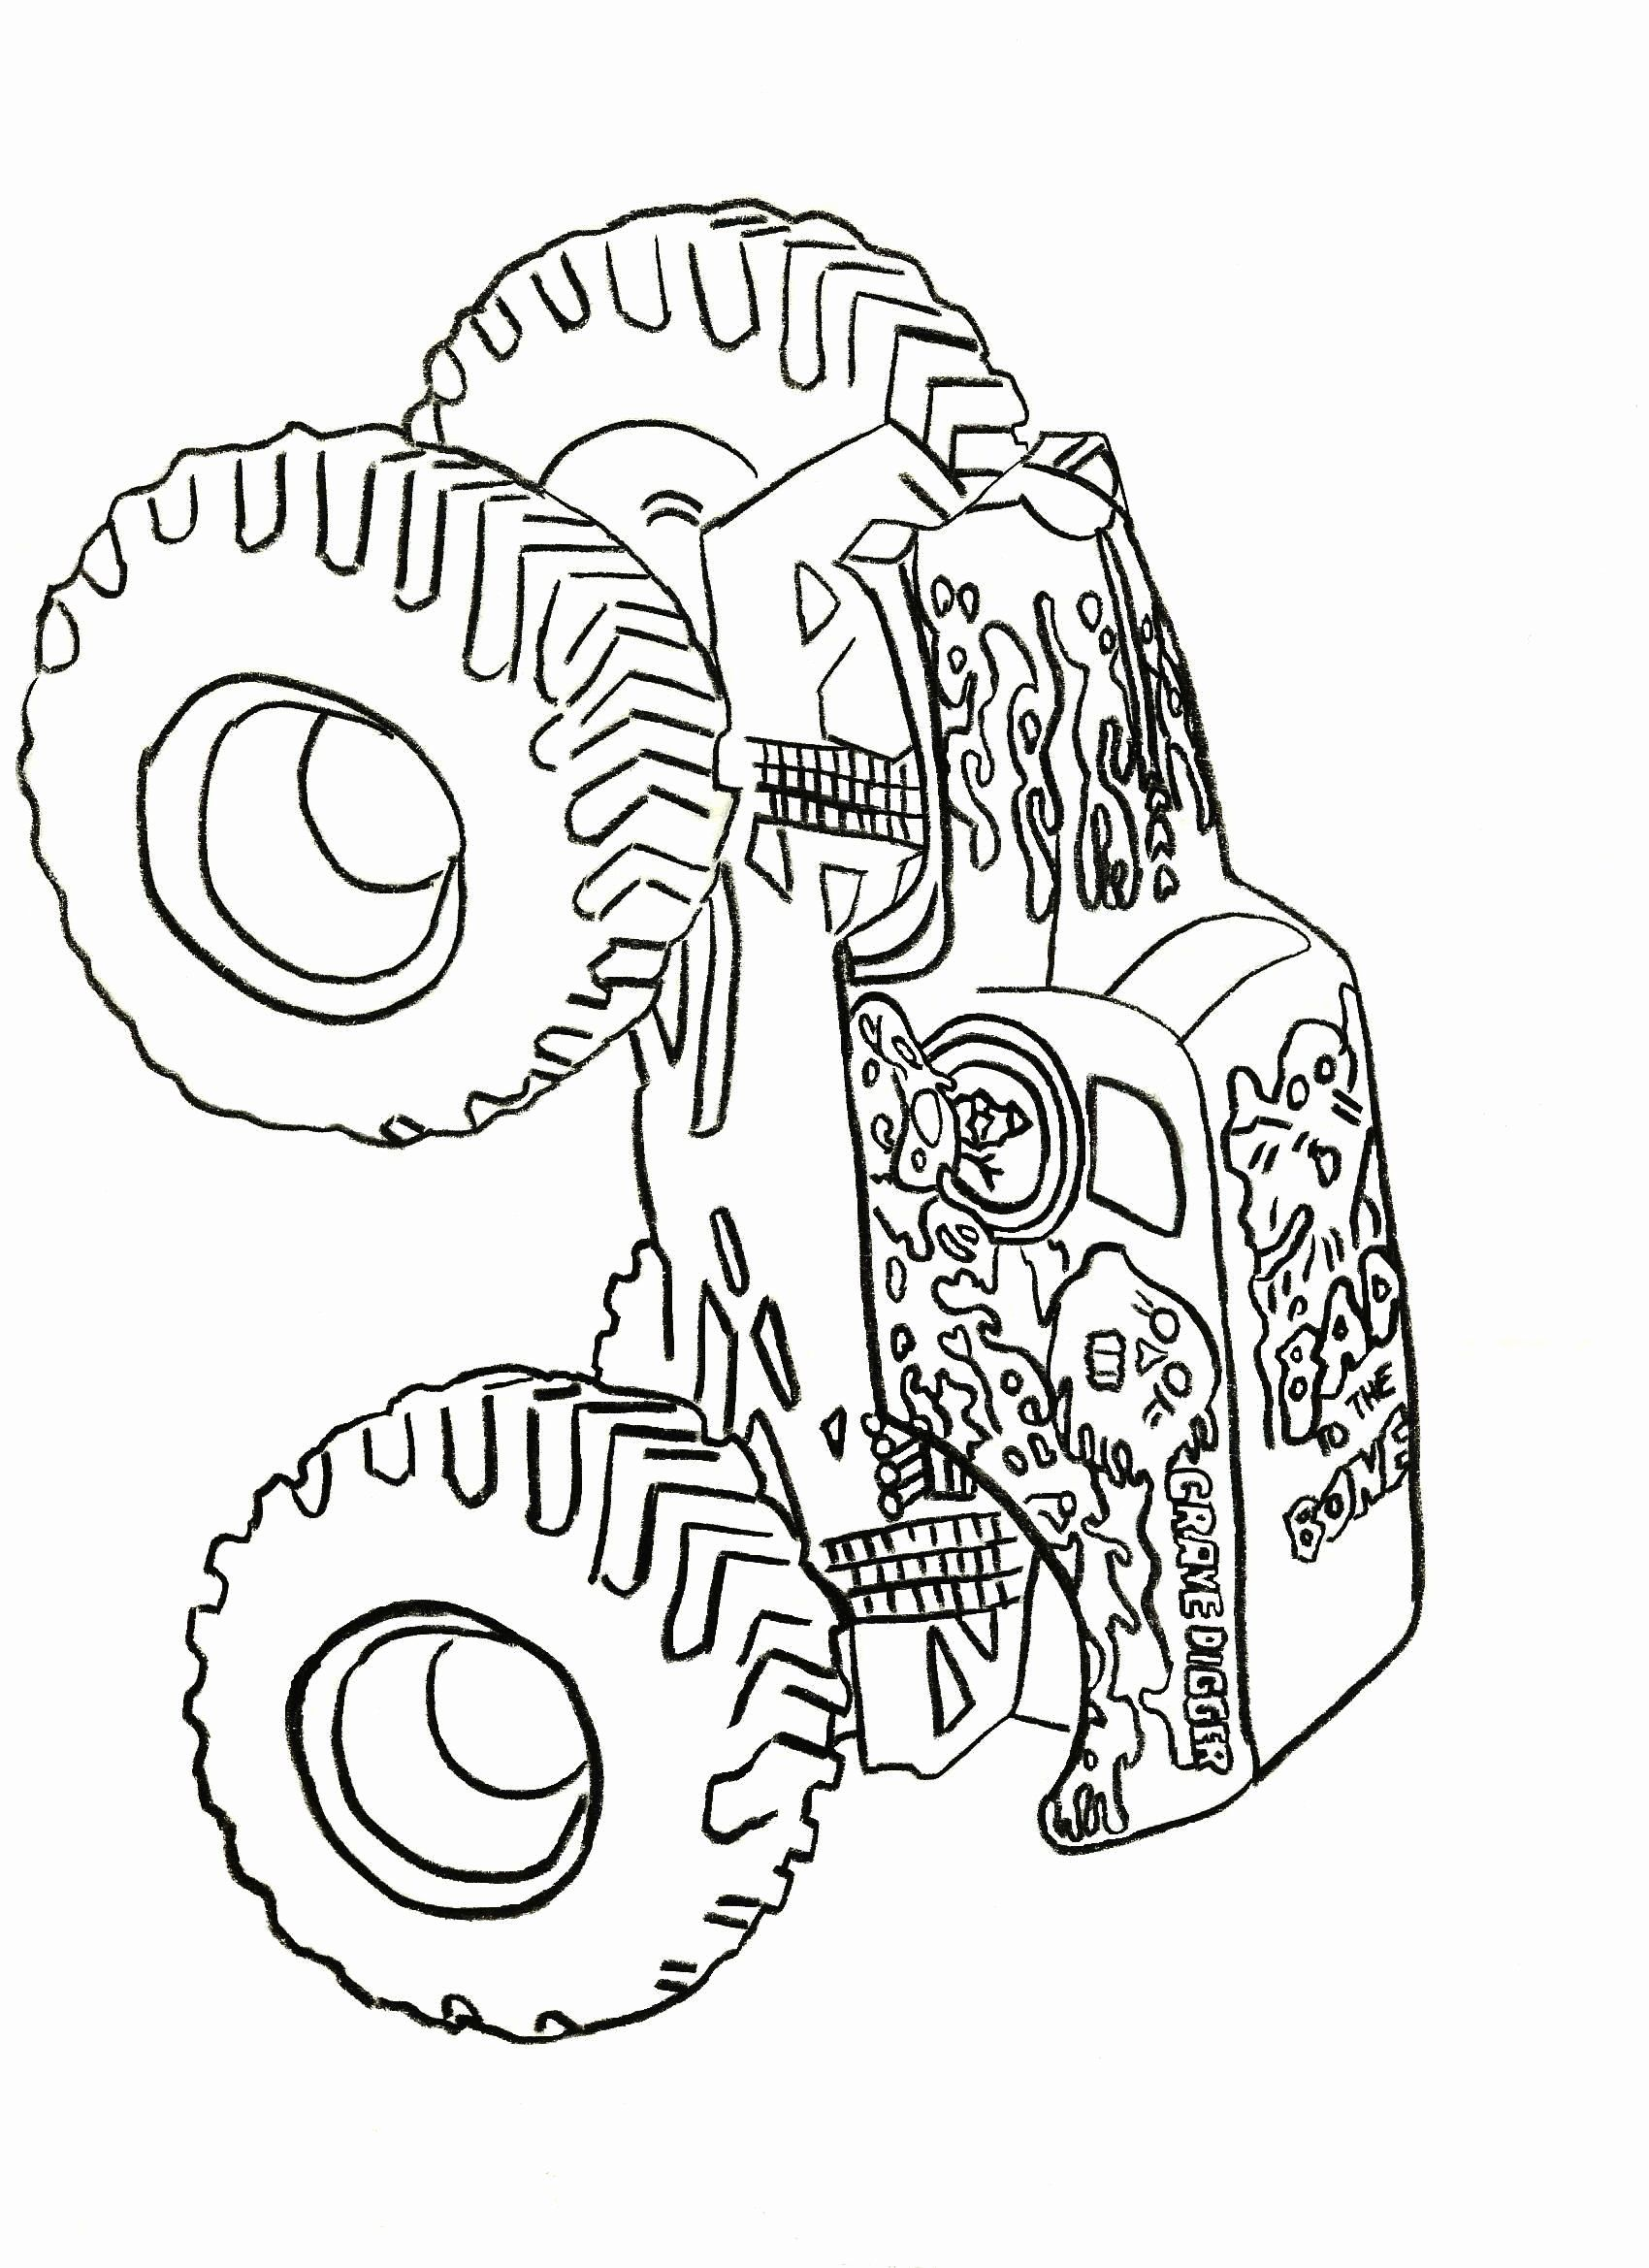 Grave Digger Coloring Page Unique Truck Coloring Book Grave Digger